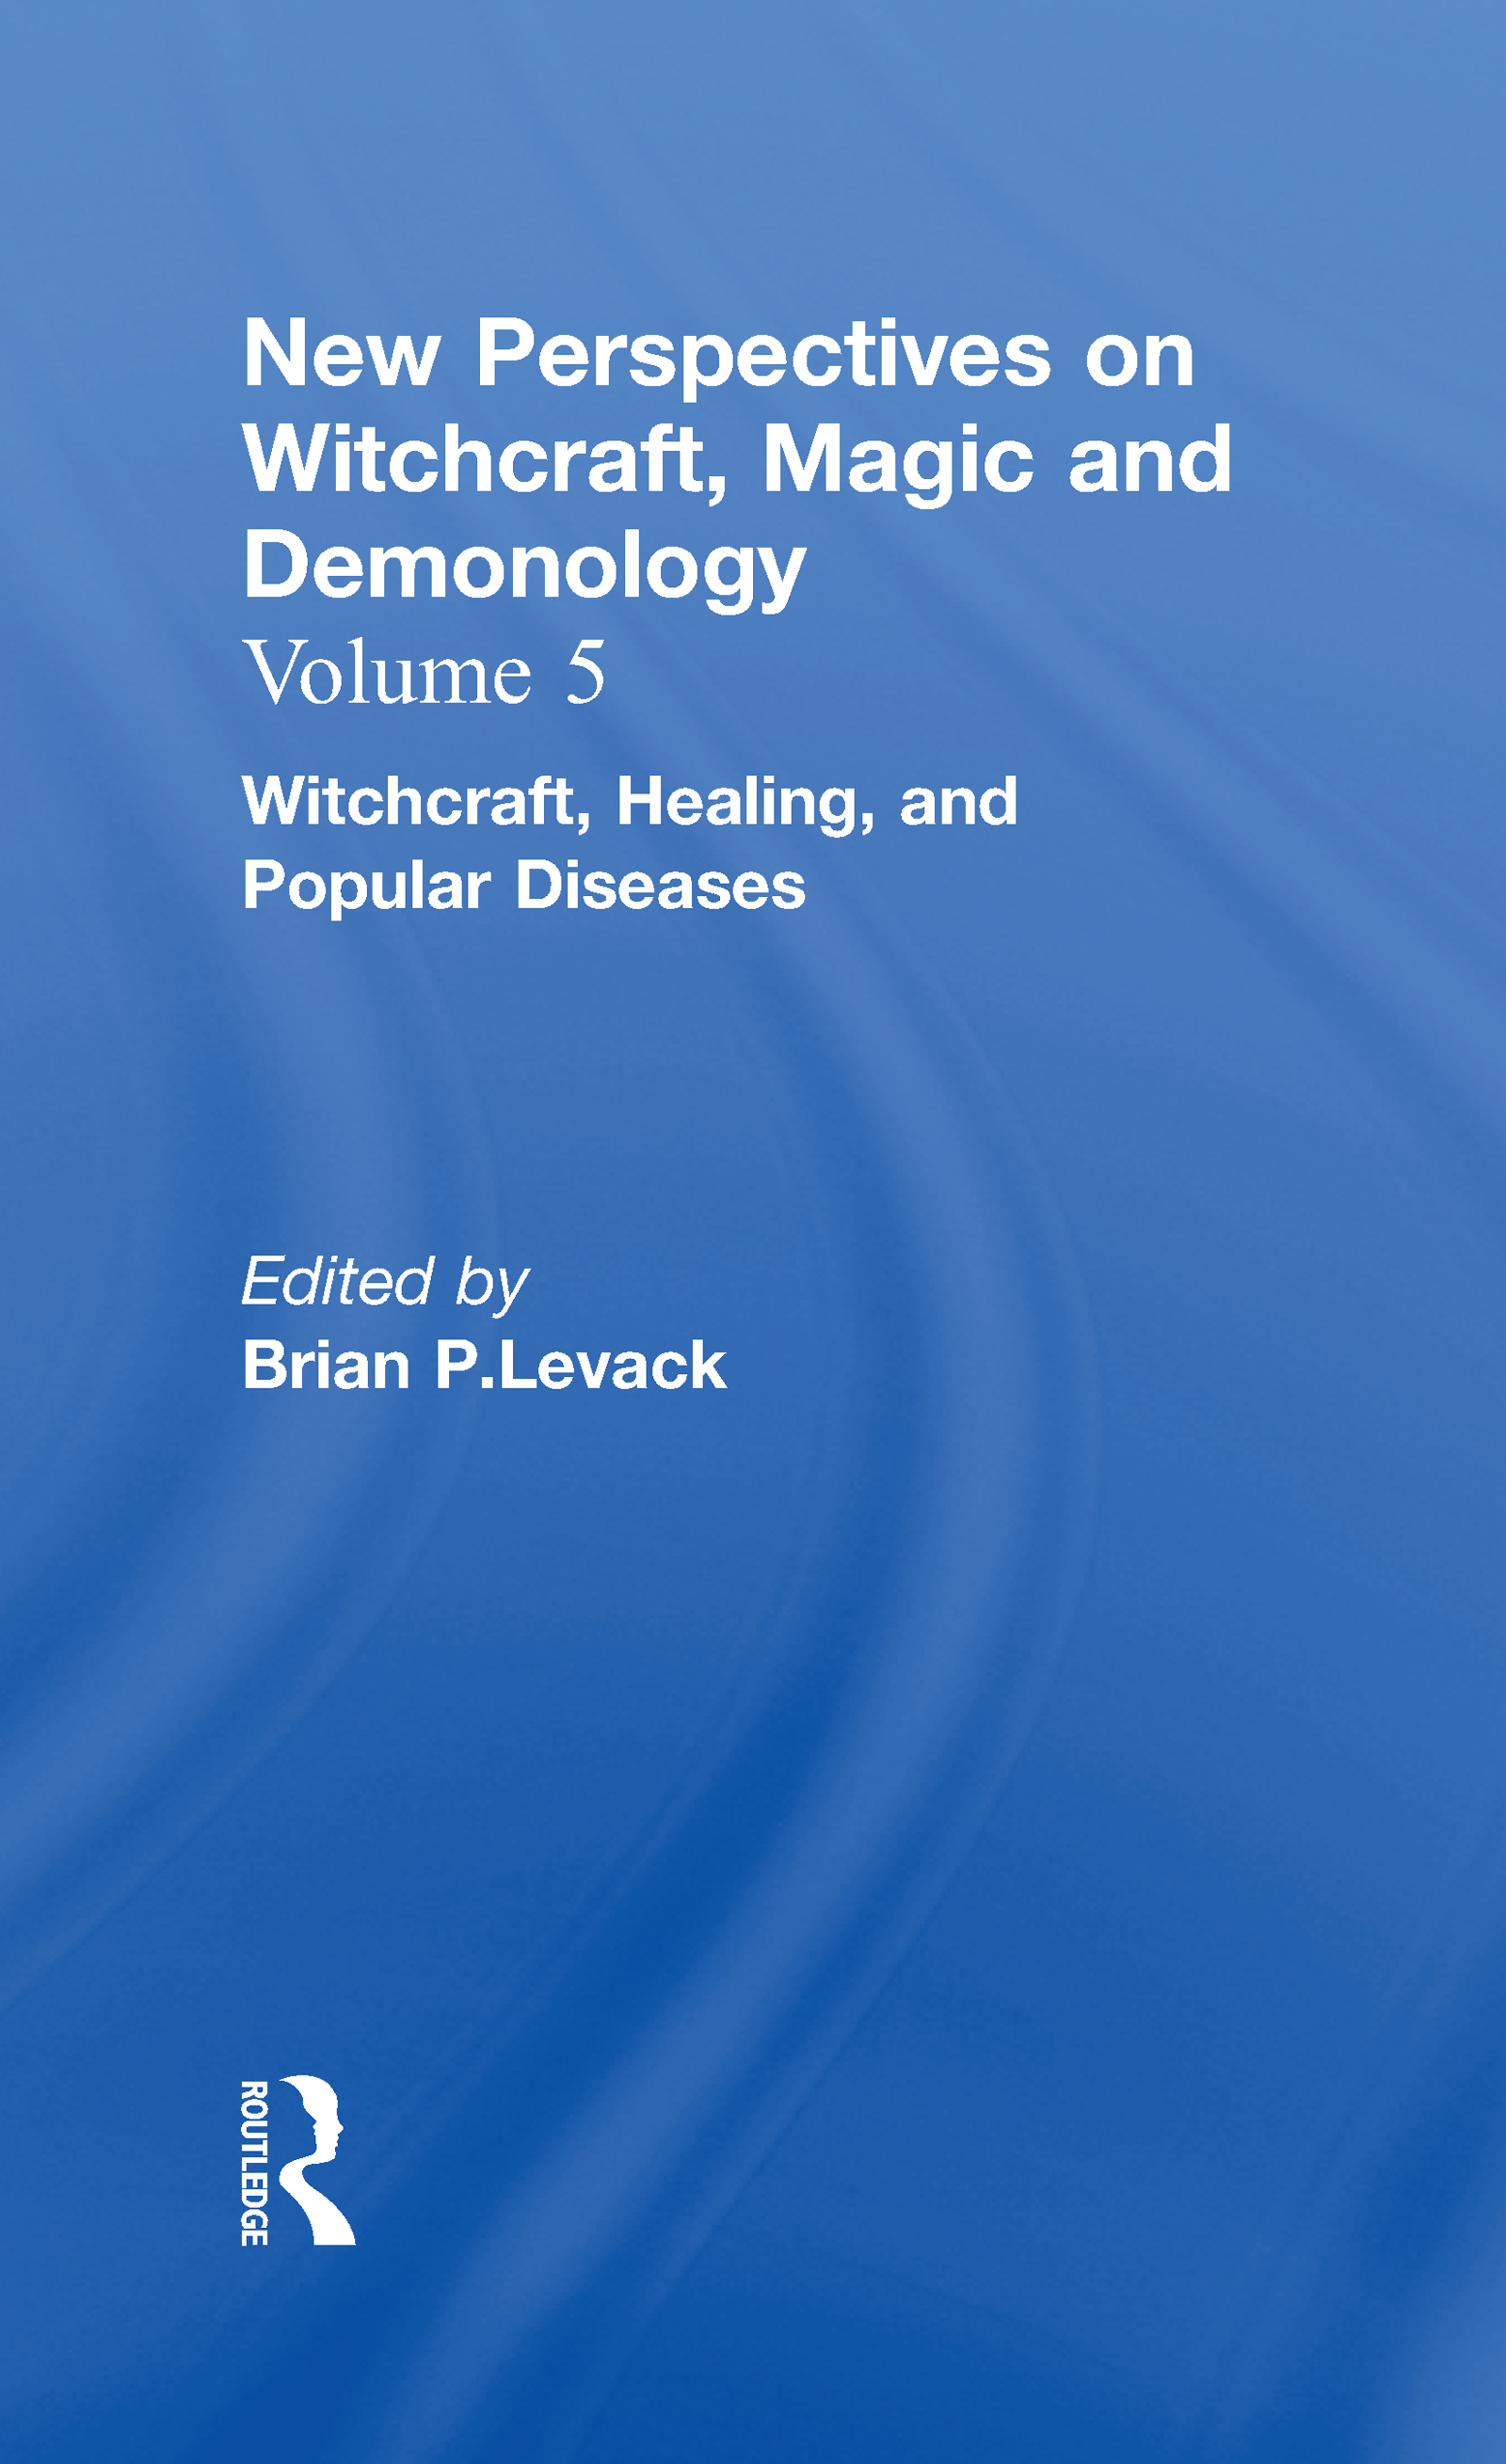 Witchcraft, Healing, and Popular Diseases